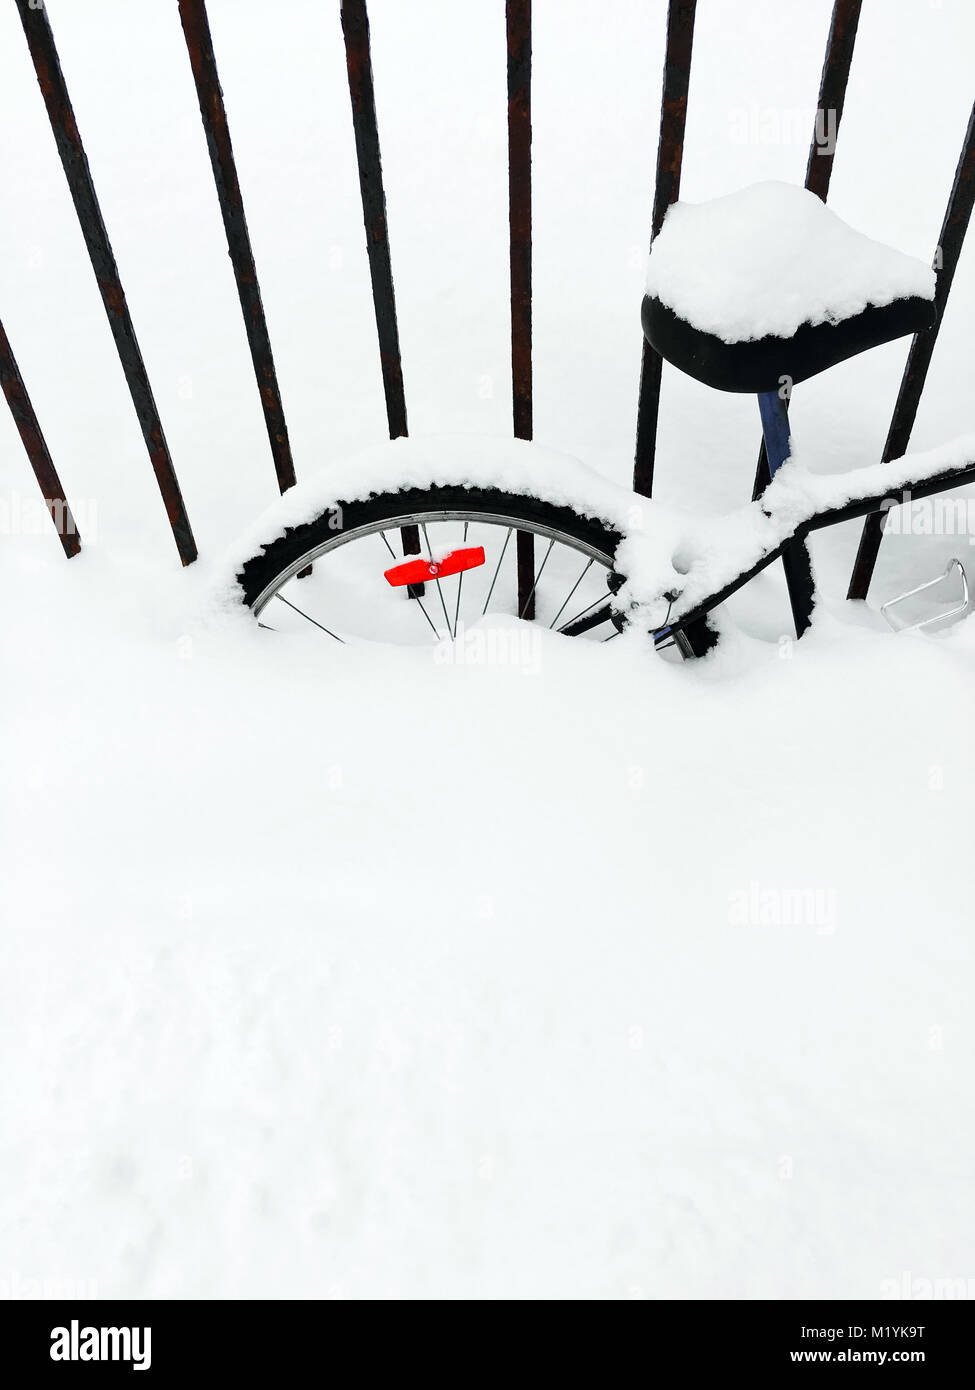 Bicycle deep in snow, after snowstorm. Canadian winter. - Stock Image